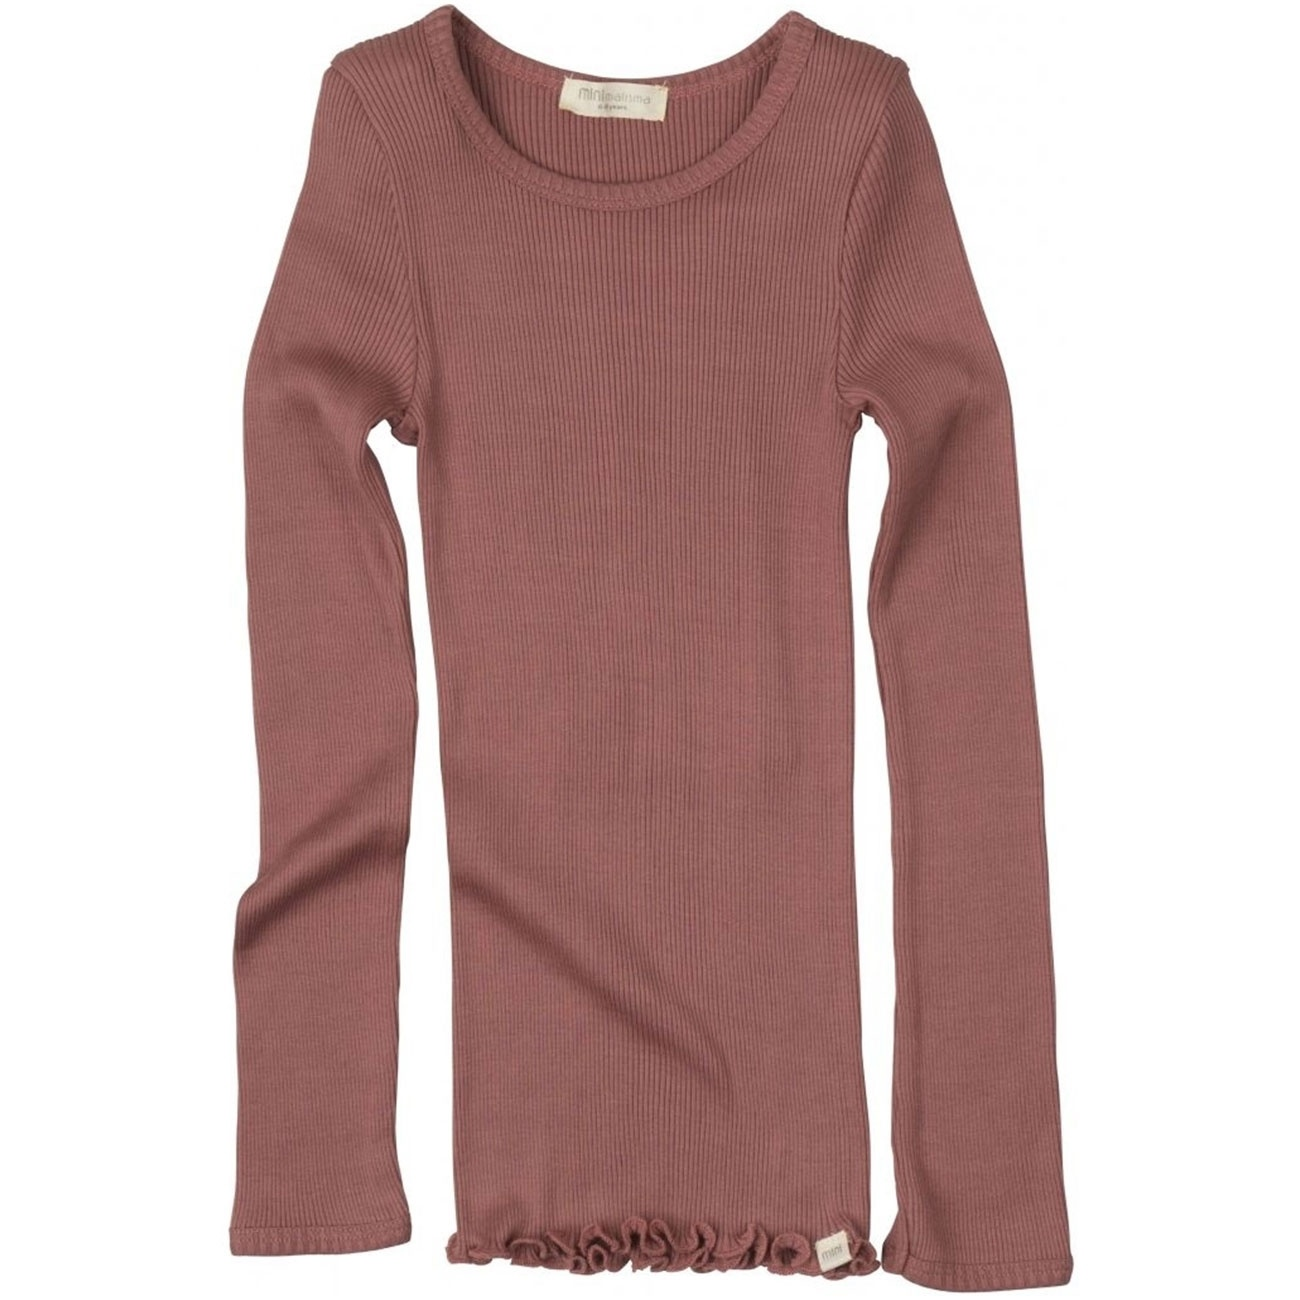 Bergen long sleeve T-shirt - Antique Red-1